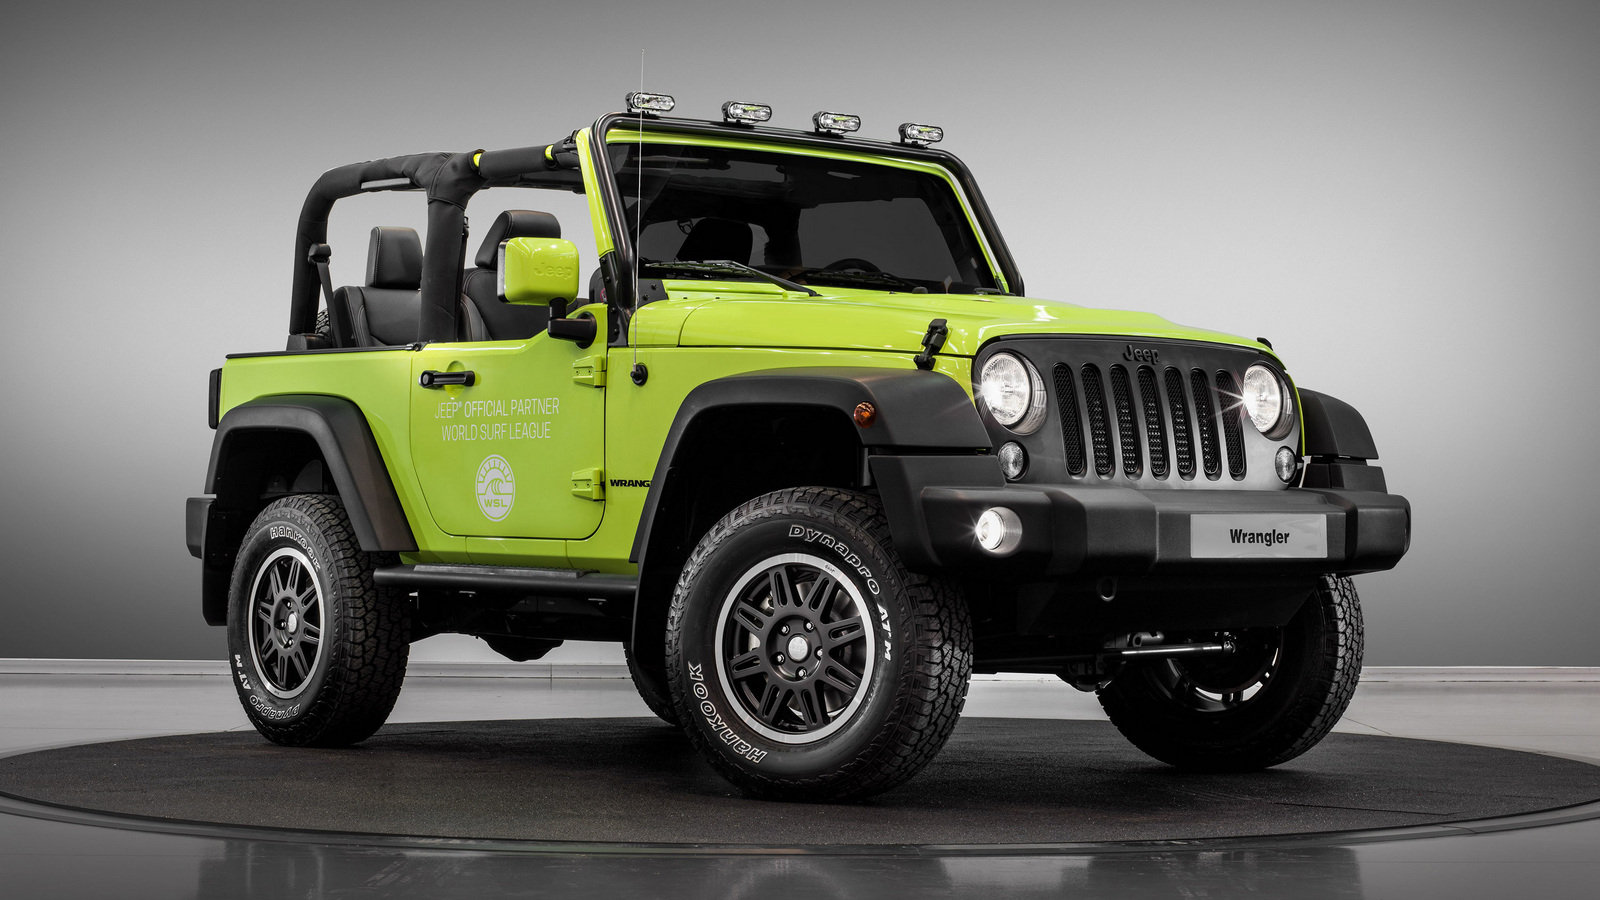 2017 jeep wrangler rubicon with moparone pack picture 688844 truck review top speed. Black Bedroom Furniture Sets. Home Design Ideas